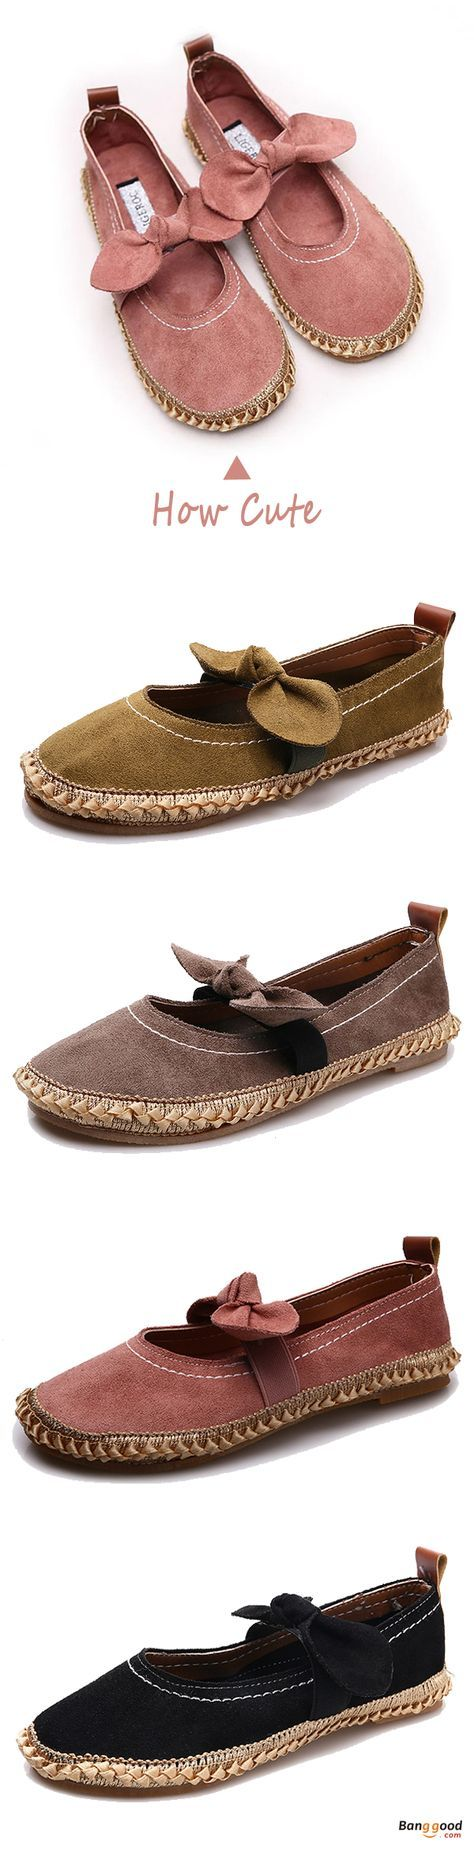 US$19.89 + Free shipping. Size: 5-9. Color: Black, Pink, Khaki, Green. Fall in love with casual and cute style! Women Bowknot Round Toe Slip-On Suede Outdoor Flat Casual Shoes.